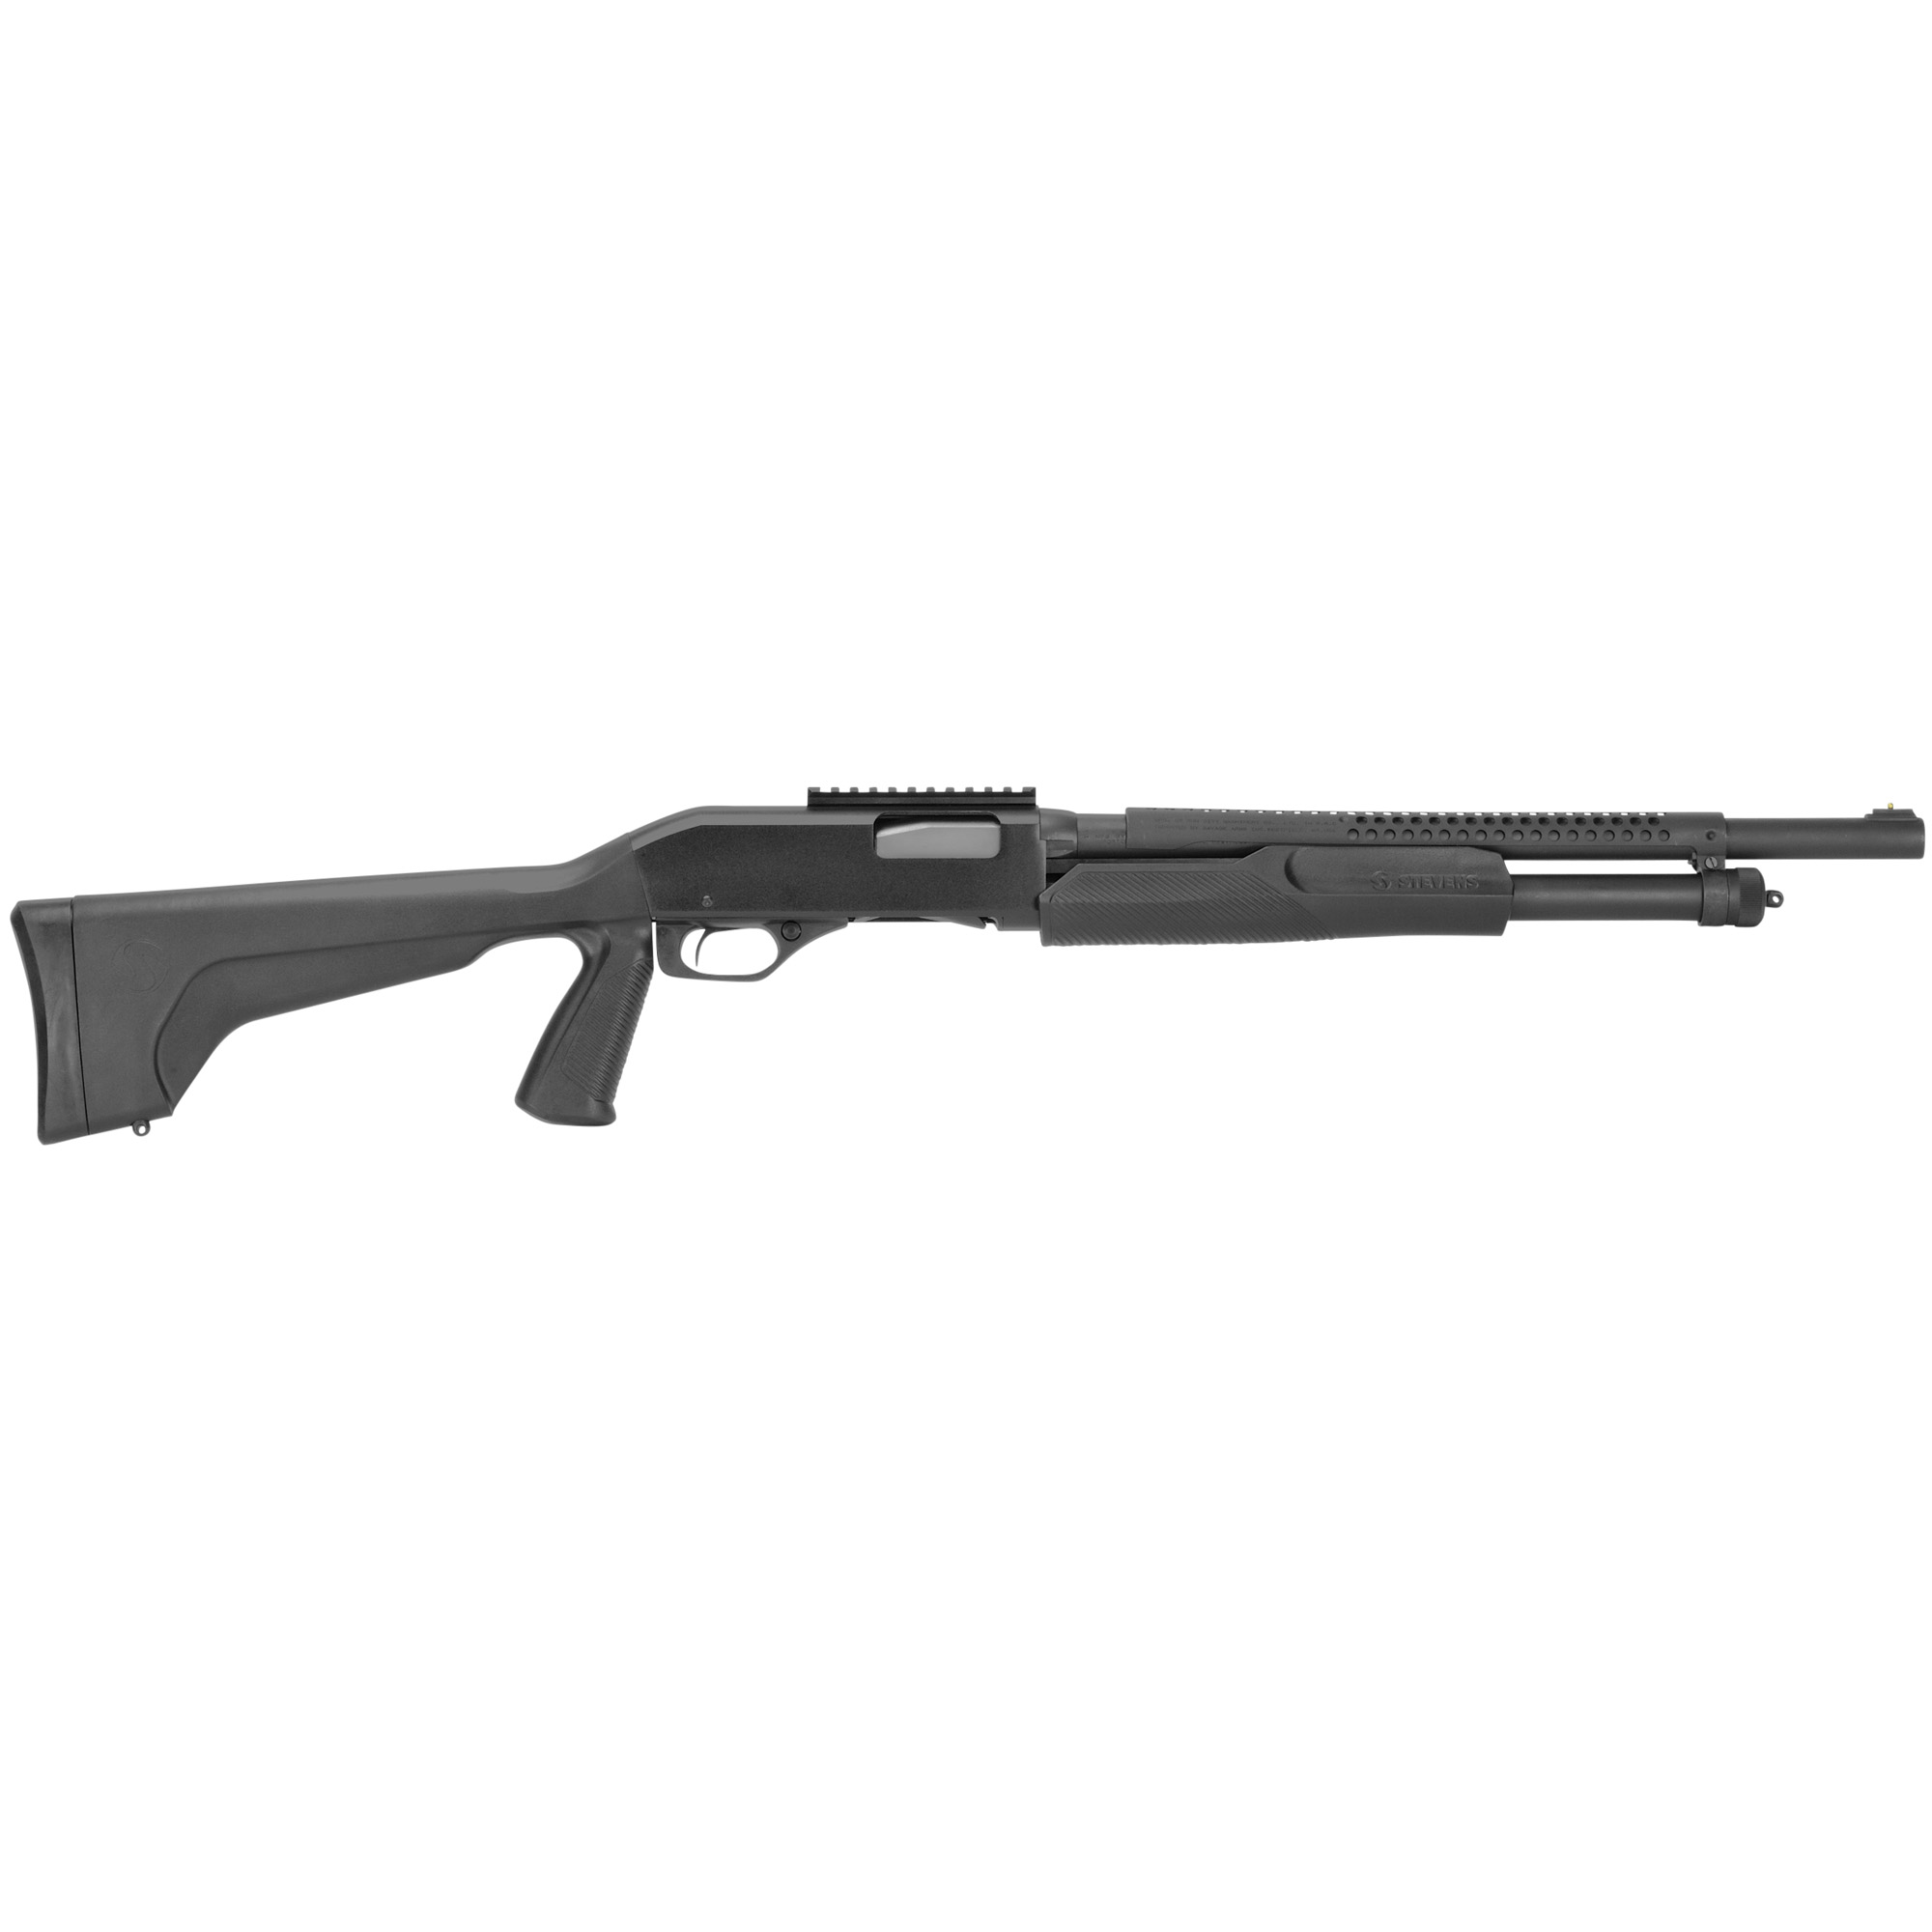 "Model 320 shotguns feature a smooth"" reliable pump action"" proven rotary bolt and dual slide-bars. Take on any tactical situation with a shotgun built specifically for the task."